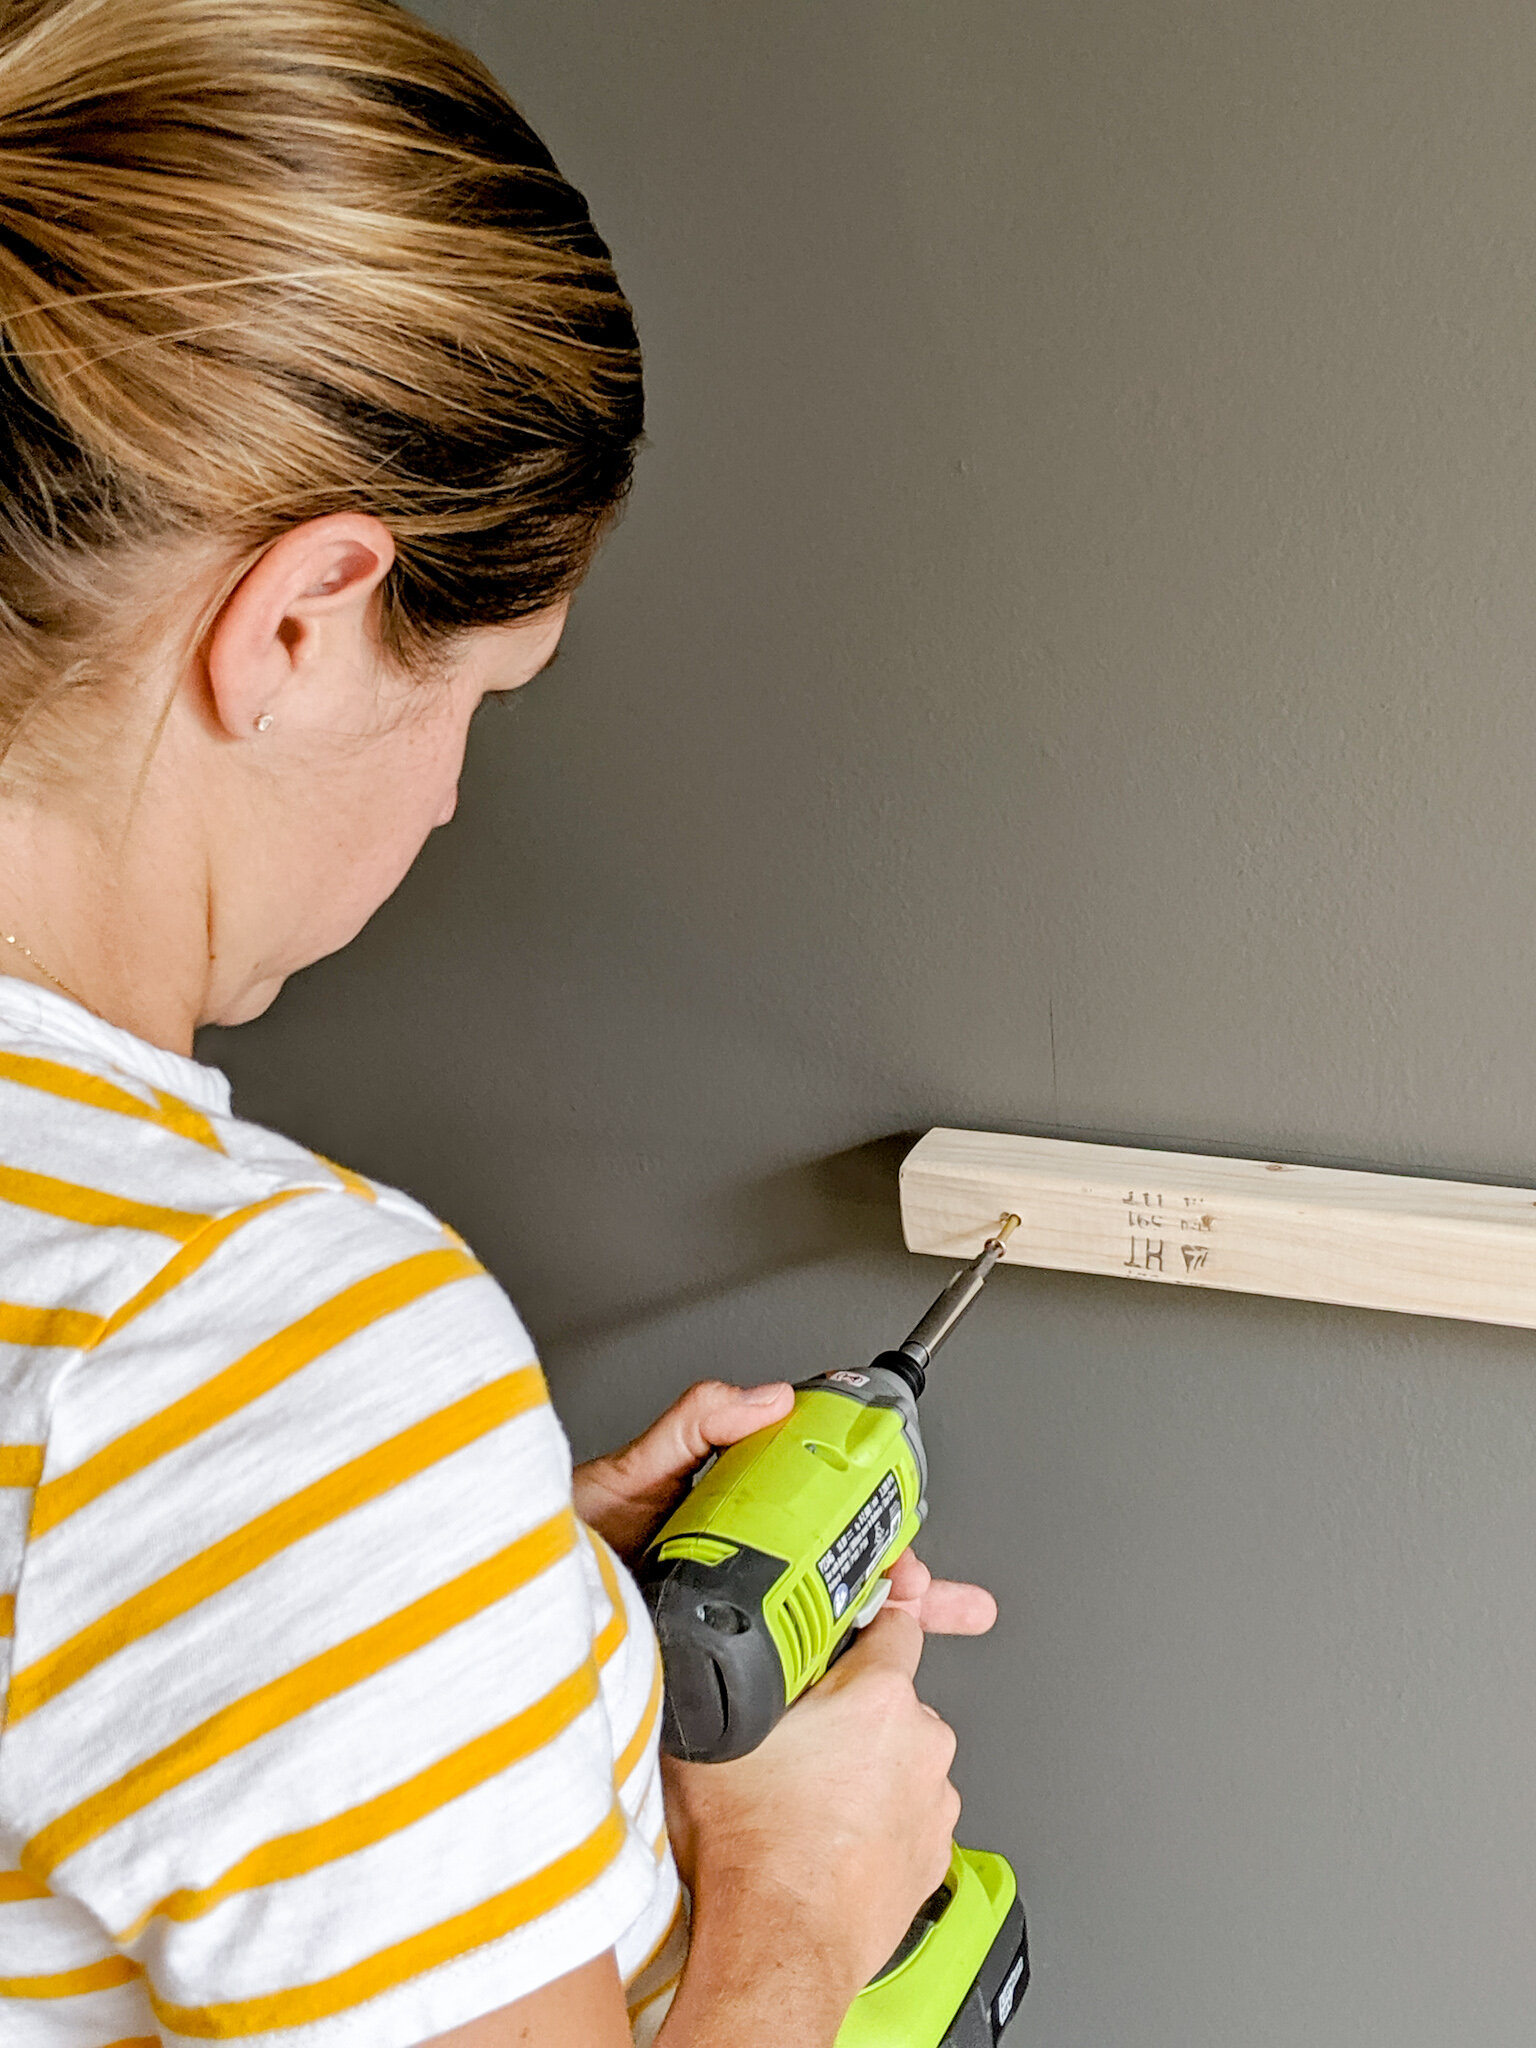 Me, screwing the ledger board into the wall for our homework station surface. Not pictured: my husband behind me cringing because he wants to do it himself.